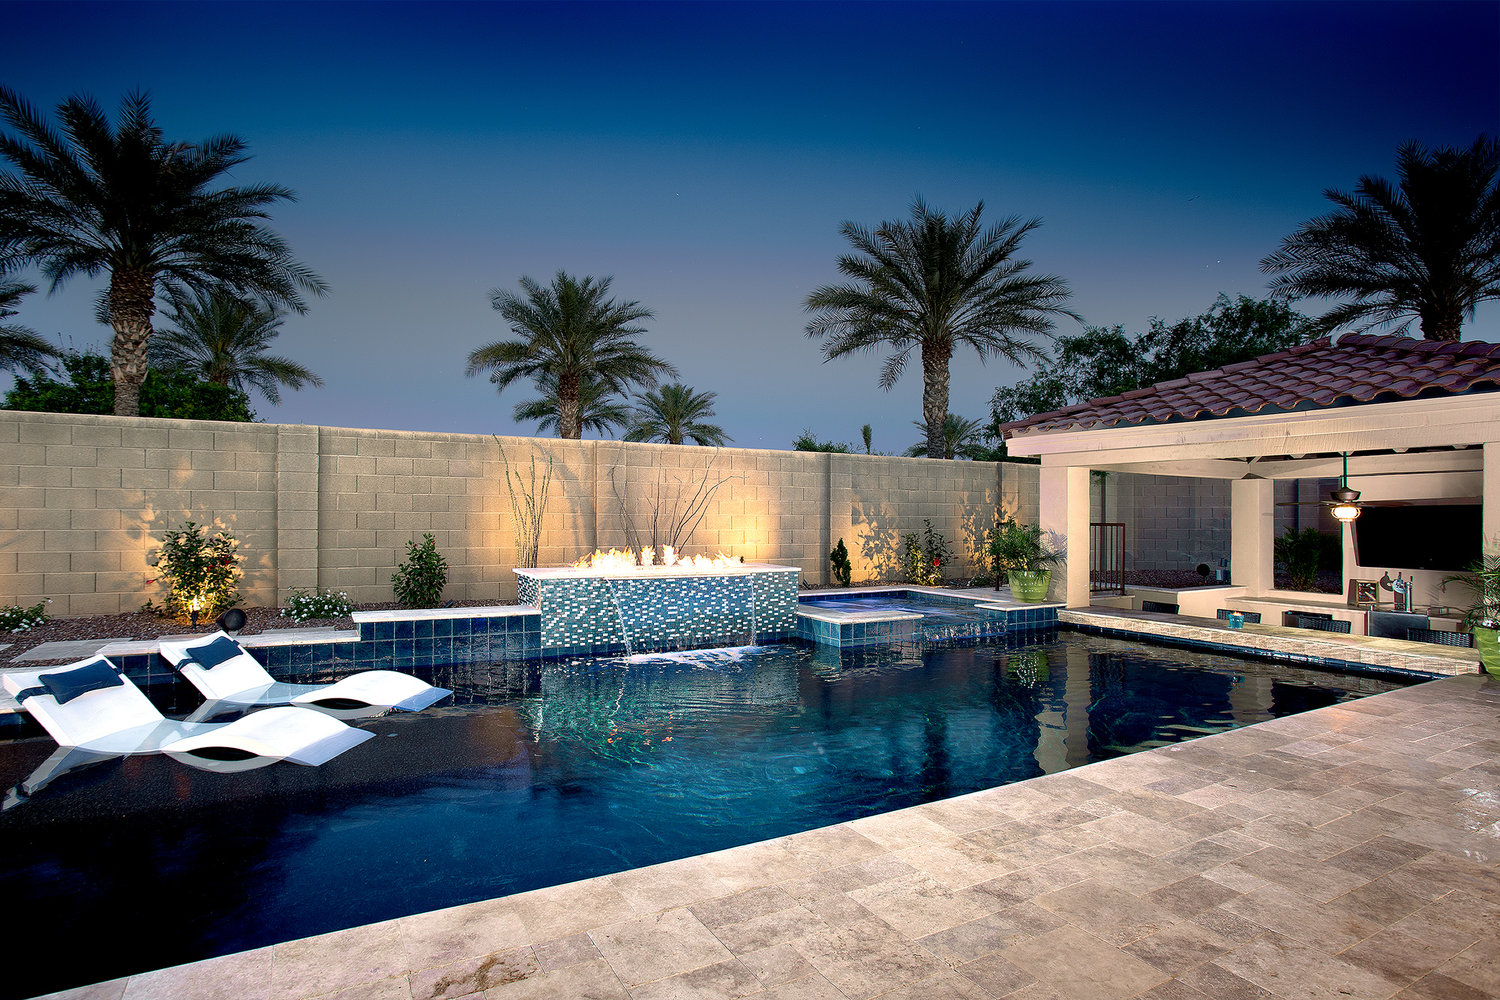 Presidential Pools, Spas & Patio of Arizona: Phoenix Valley & Tucson's  Largest Pool Builder and Hot Tub & Spa Retailer - Presidential Pools, Spas & Patio Of Arizona: Phoenix Valley